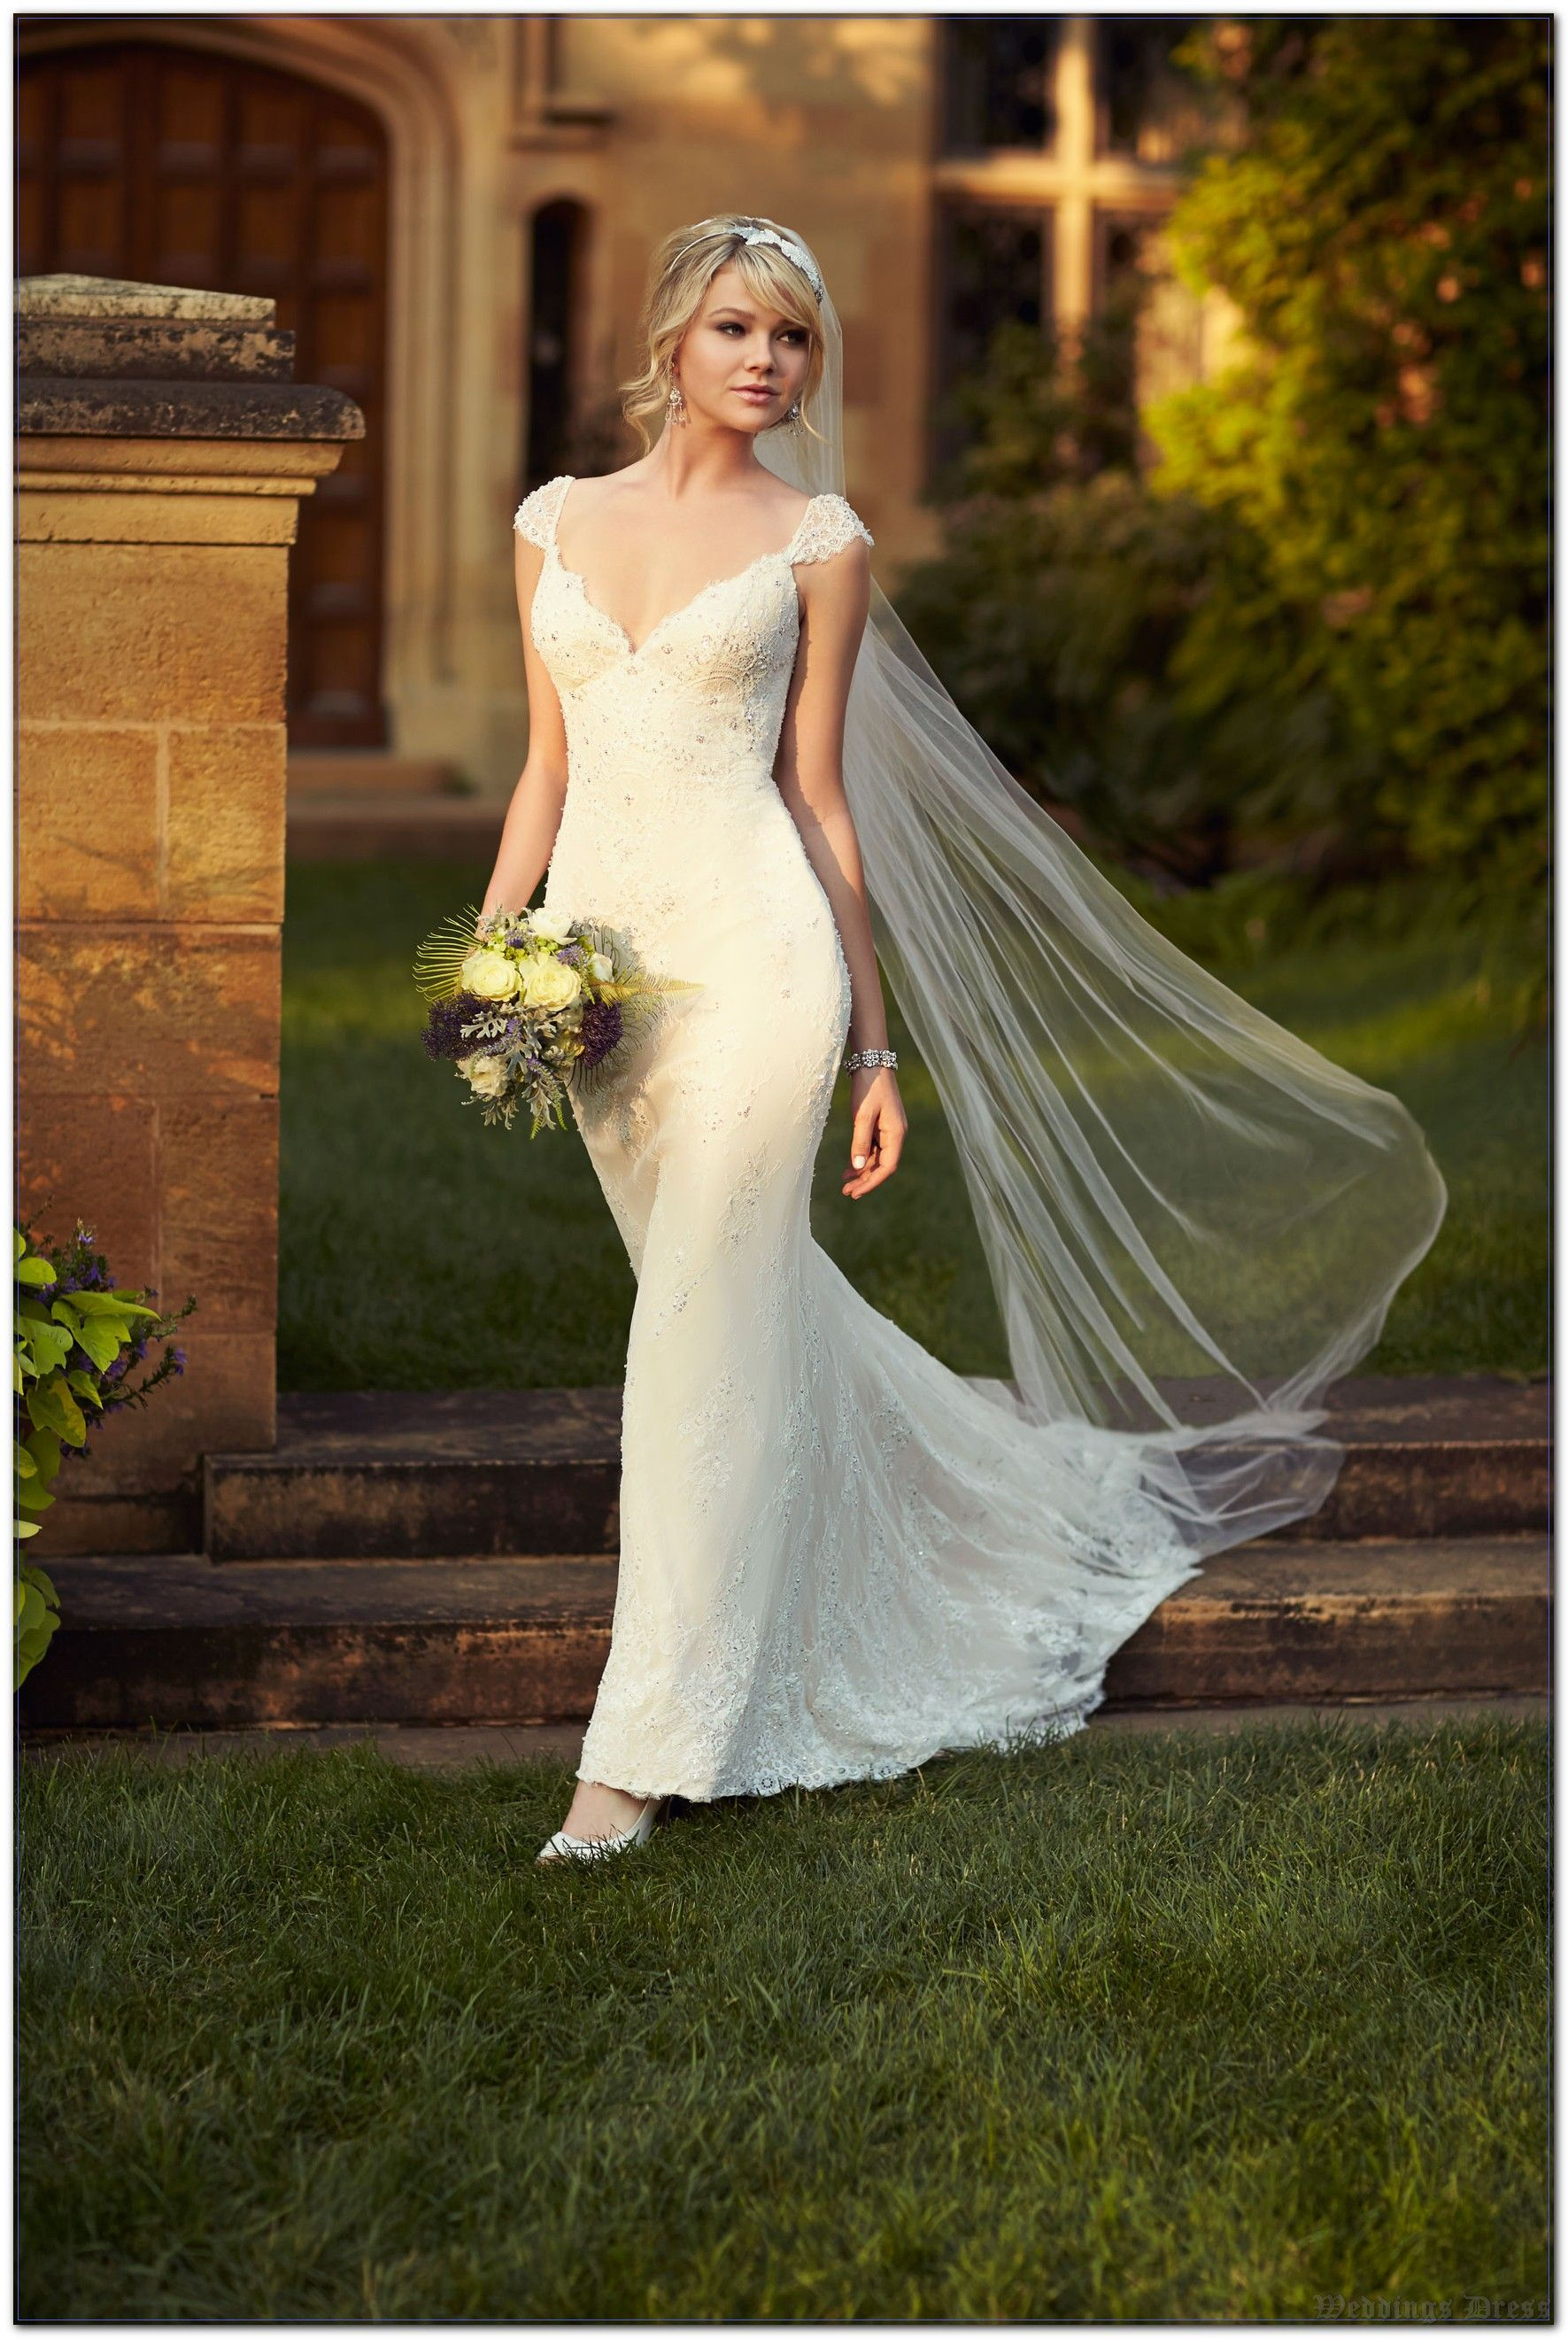 10 Ways To Reinvent Your Weddings Dress